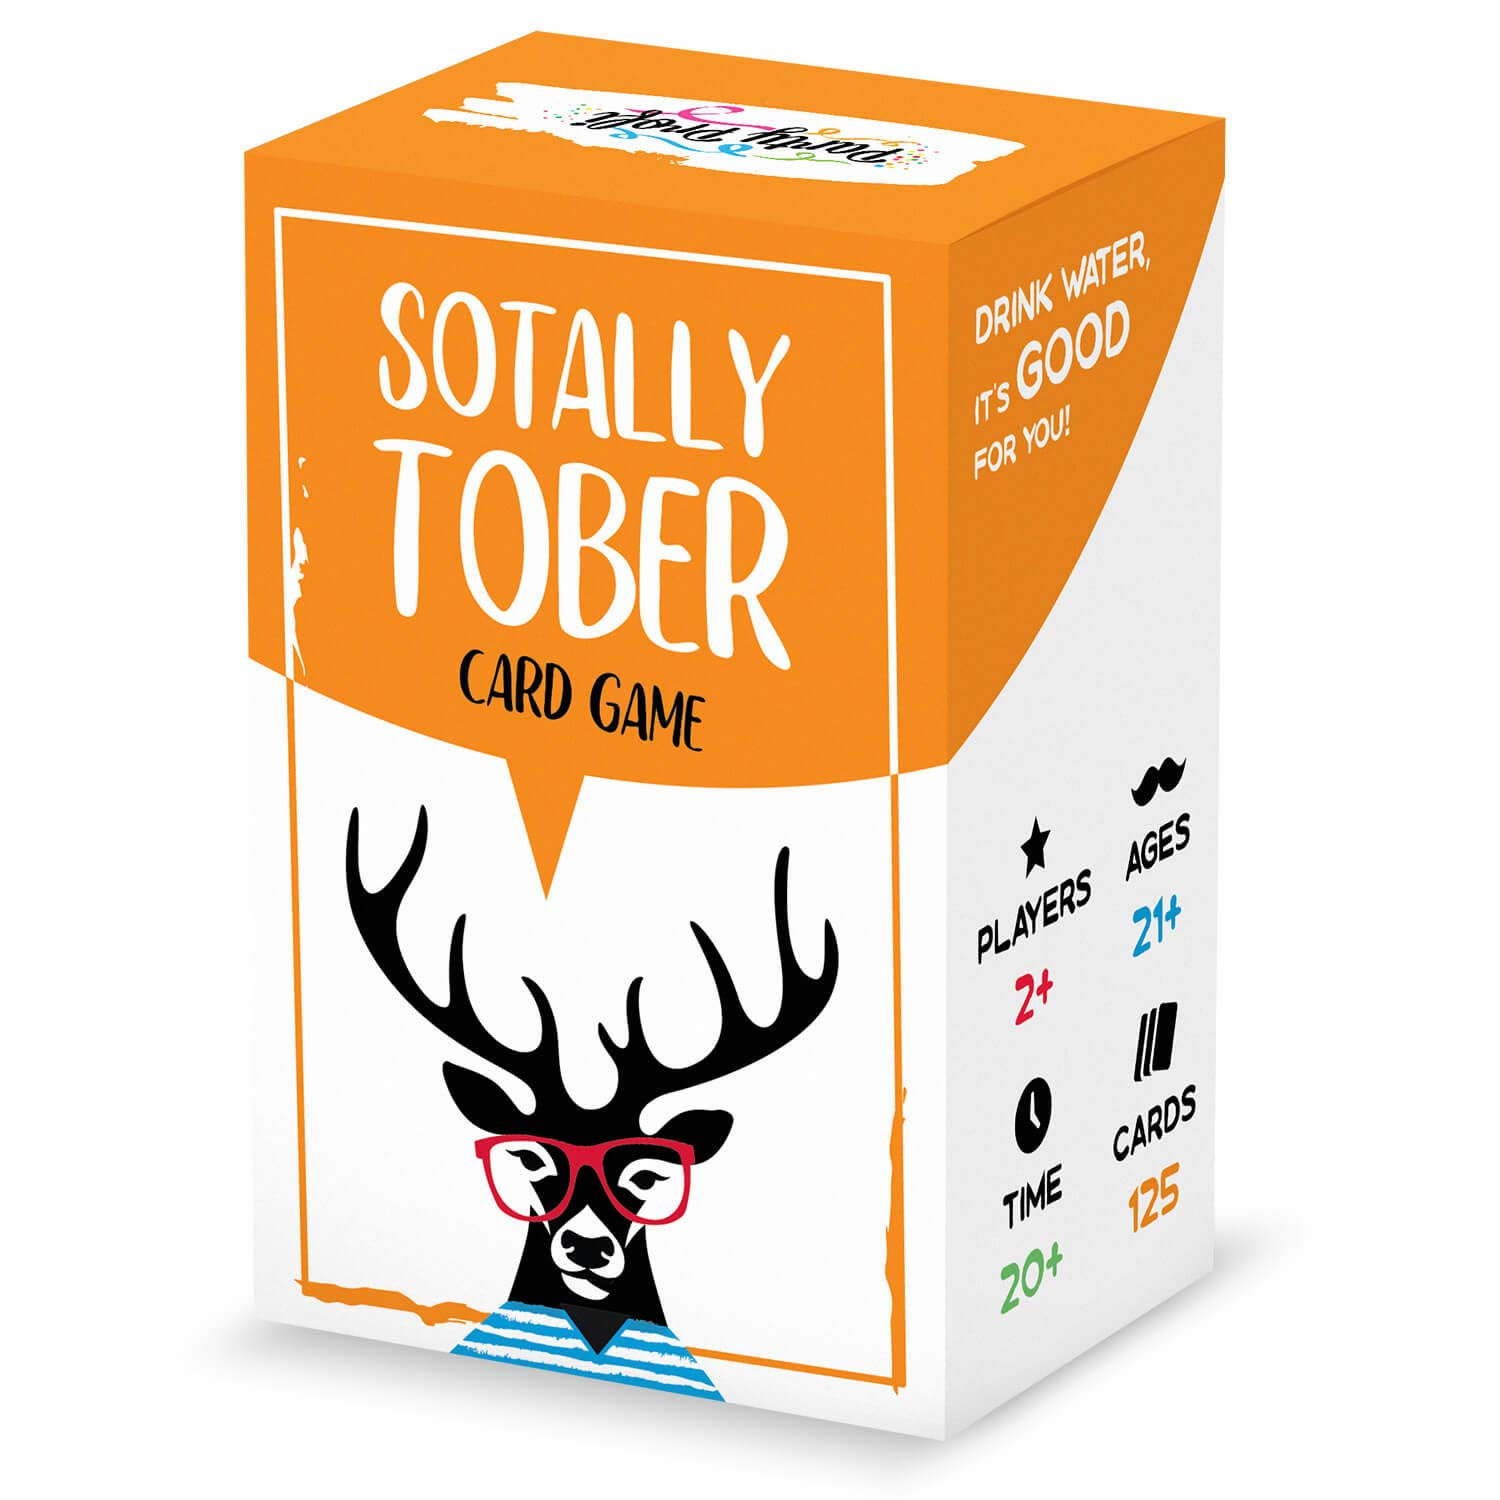 Sotally Tober Drinking Games for Adults - Outrageously Fun Adult Party Card Game